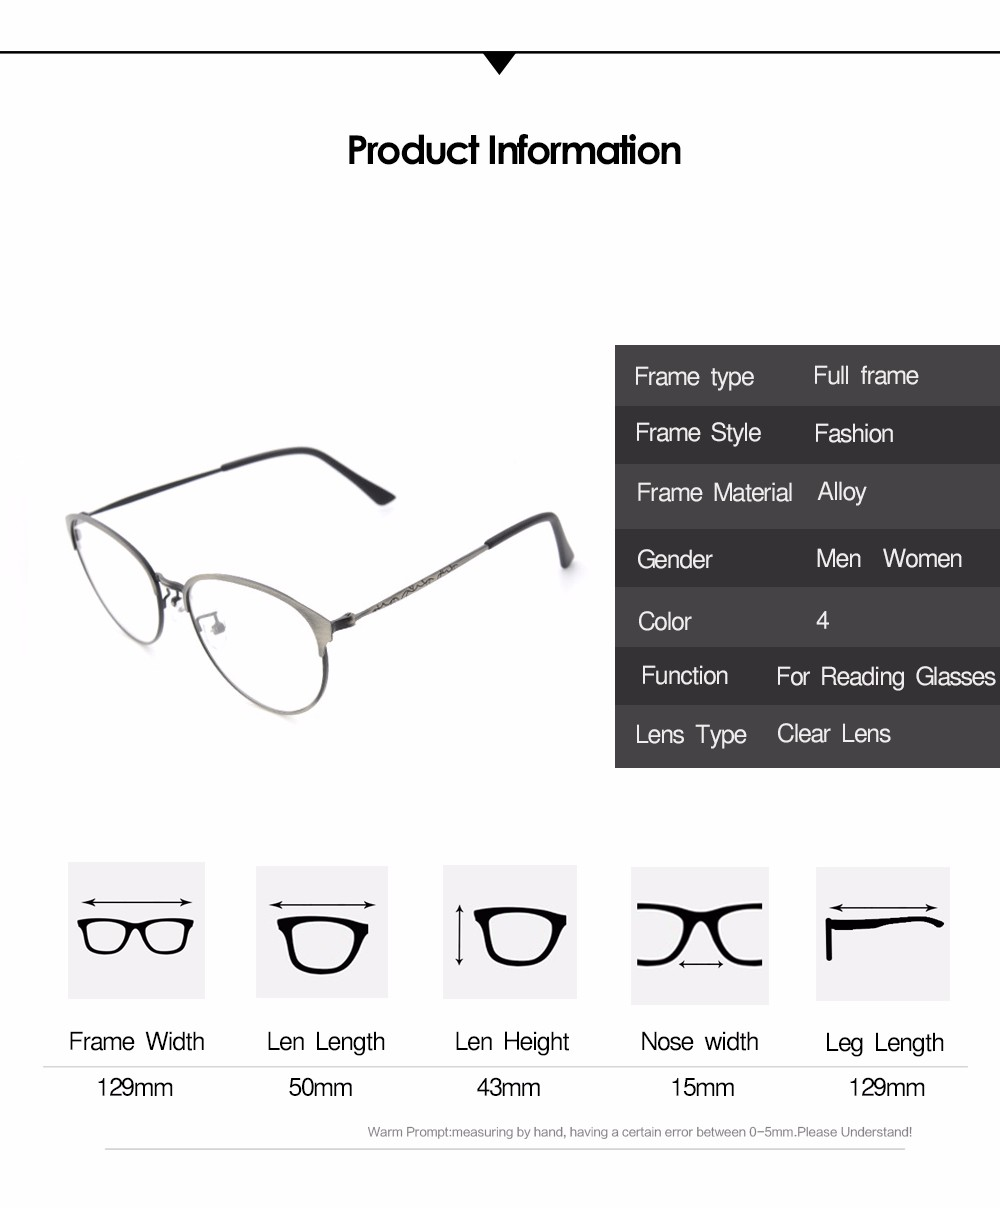 Men's Eyewear Frames Men's Glasses Practical Shauna Carbon Fiber Decoration Tr90 Eyeglasses Prescription Frame Men Resin Lens Ultralight Square Optical Glasses Myopia